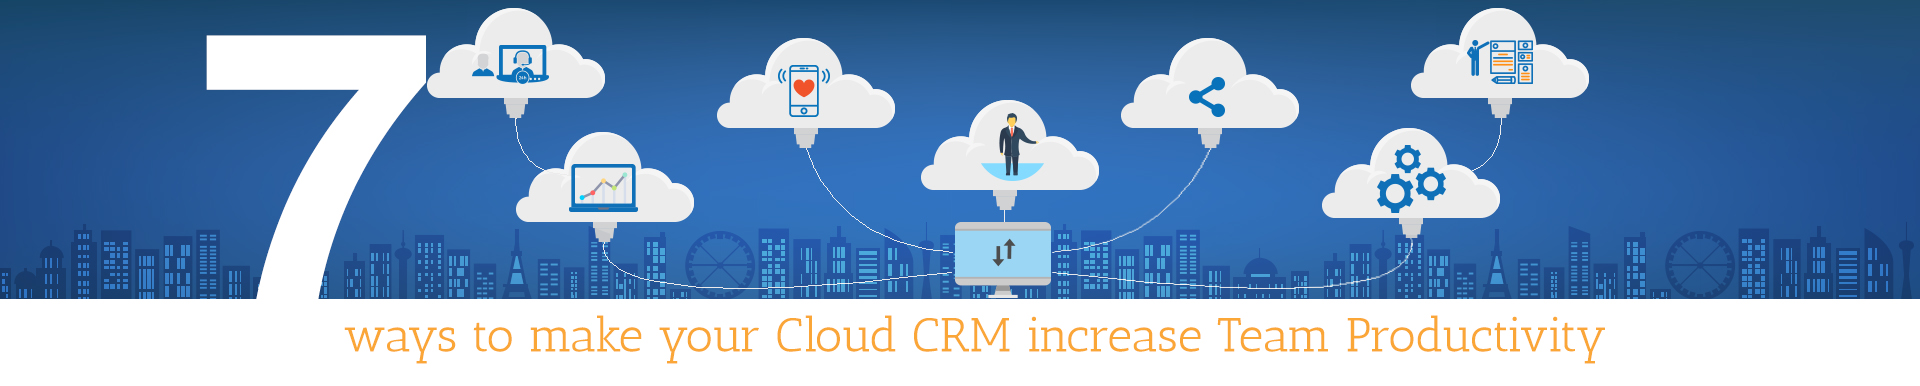 Cloud CRM Team Productivity